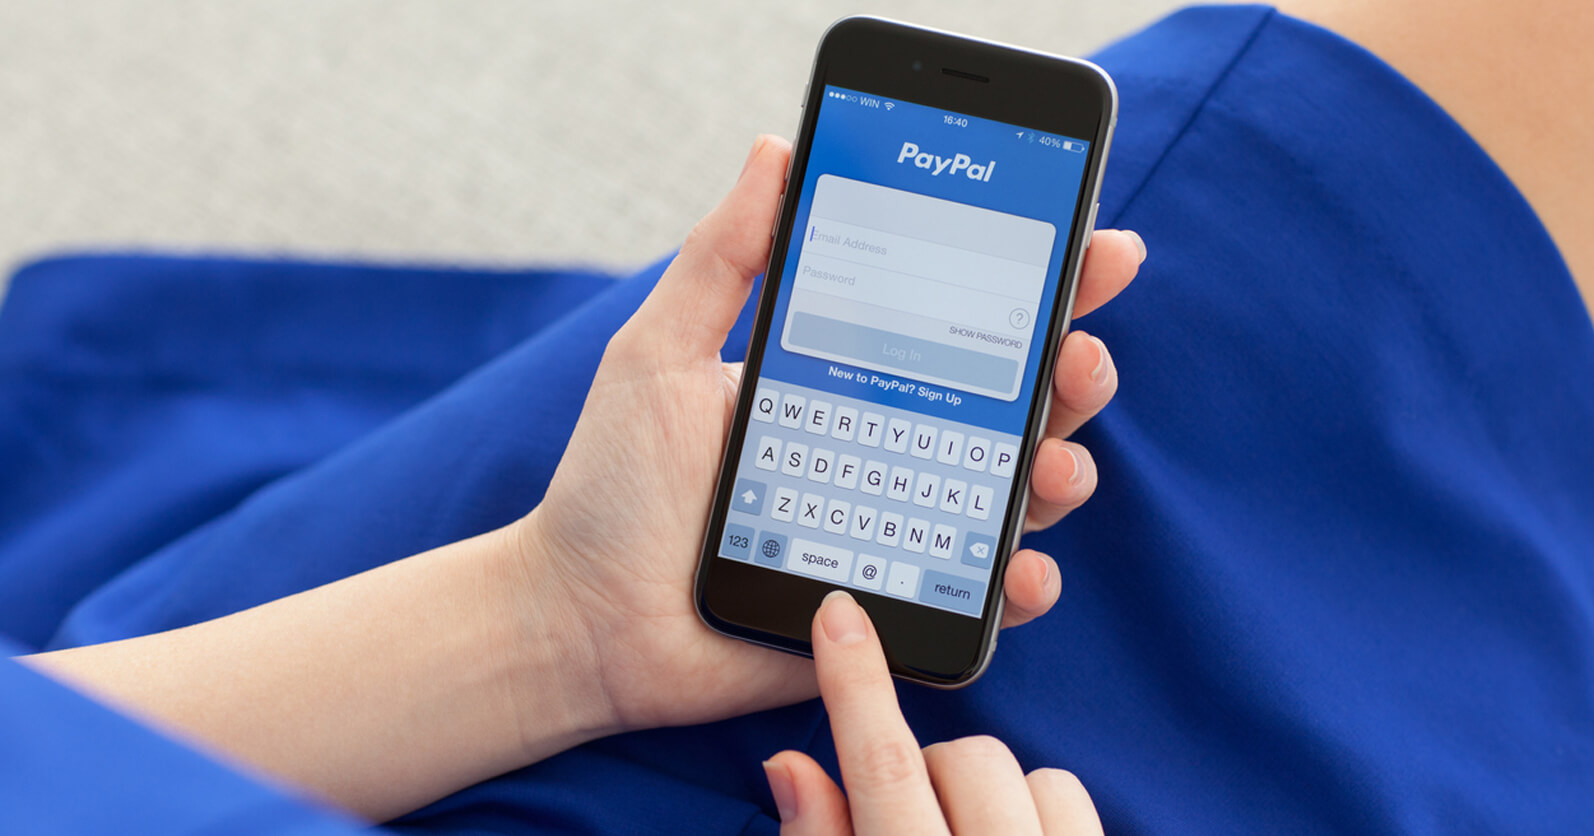 Sending money with PayPal